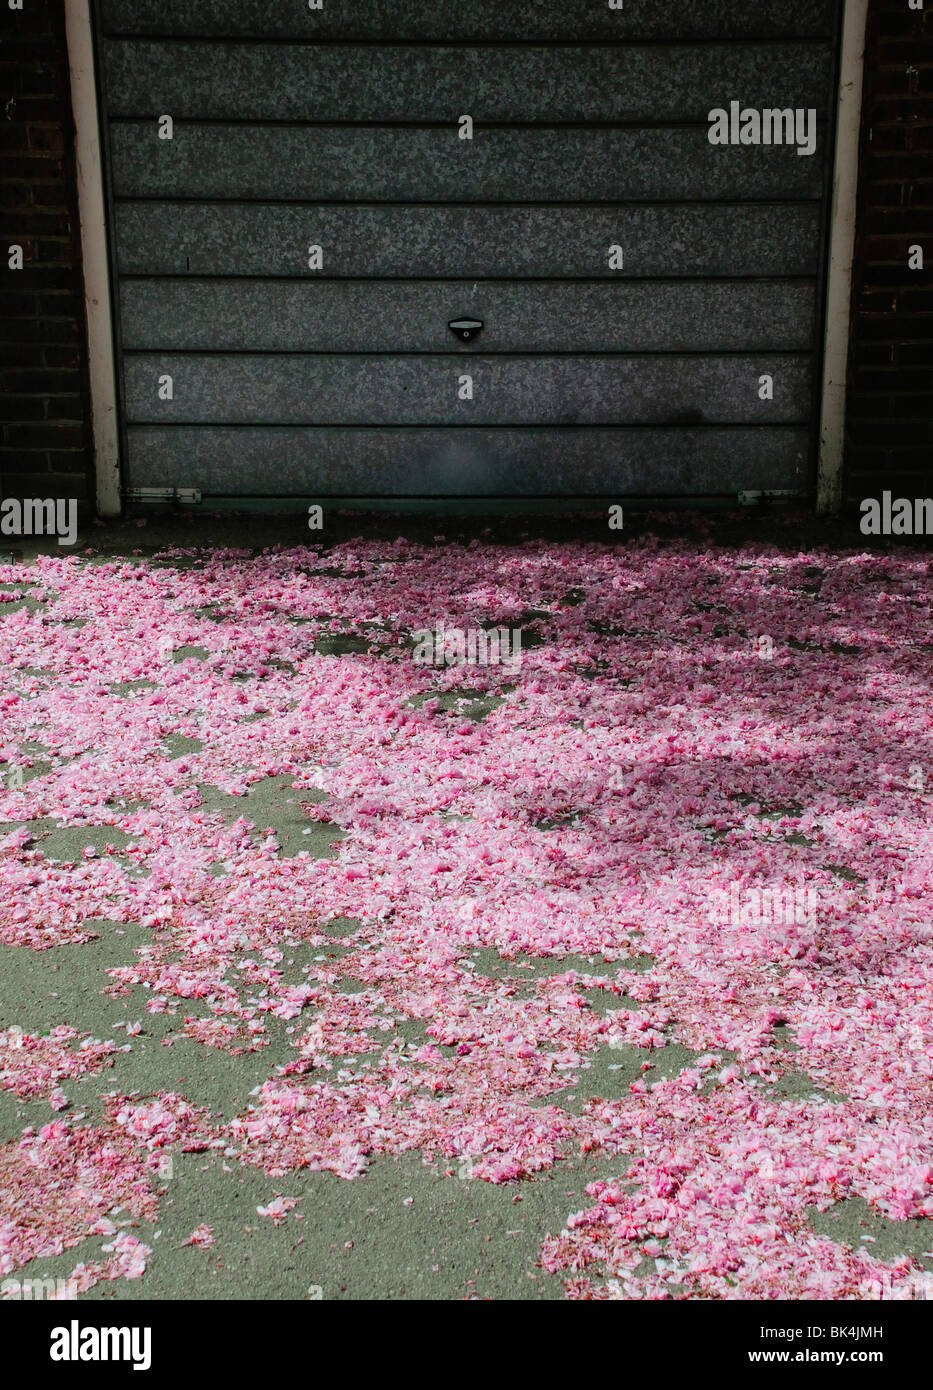 Scattering of fallen pink blossom on ground in front of metal garage door - Stock Image